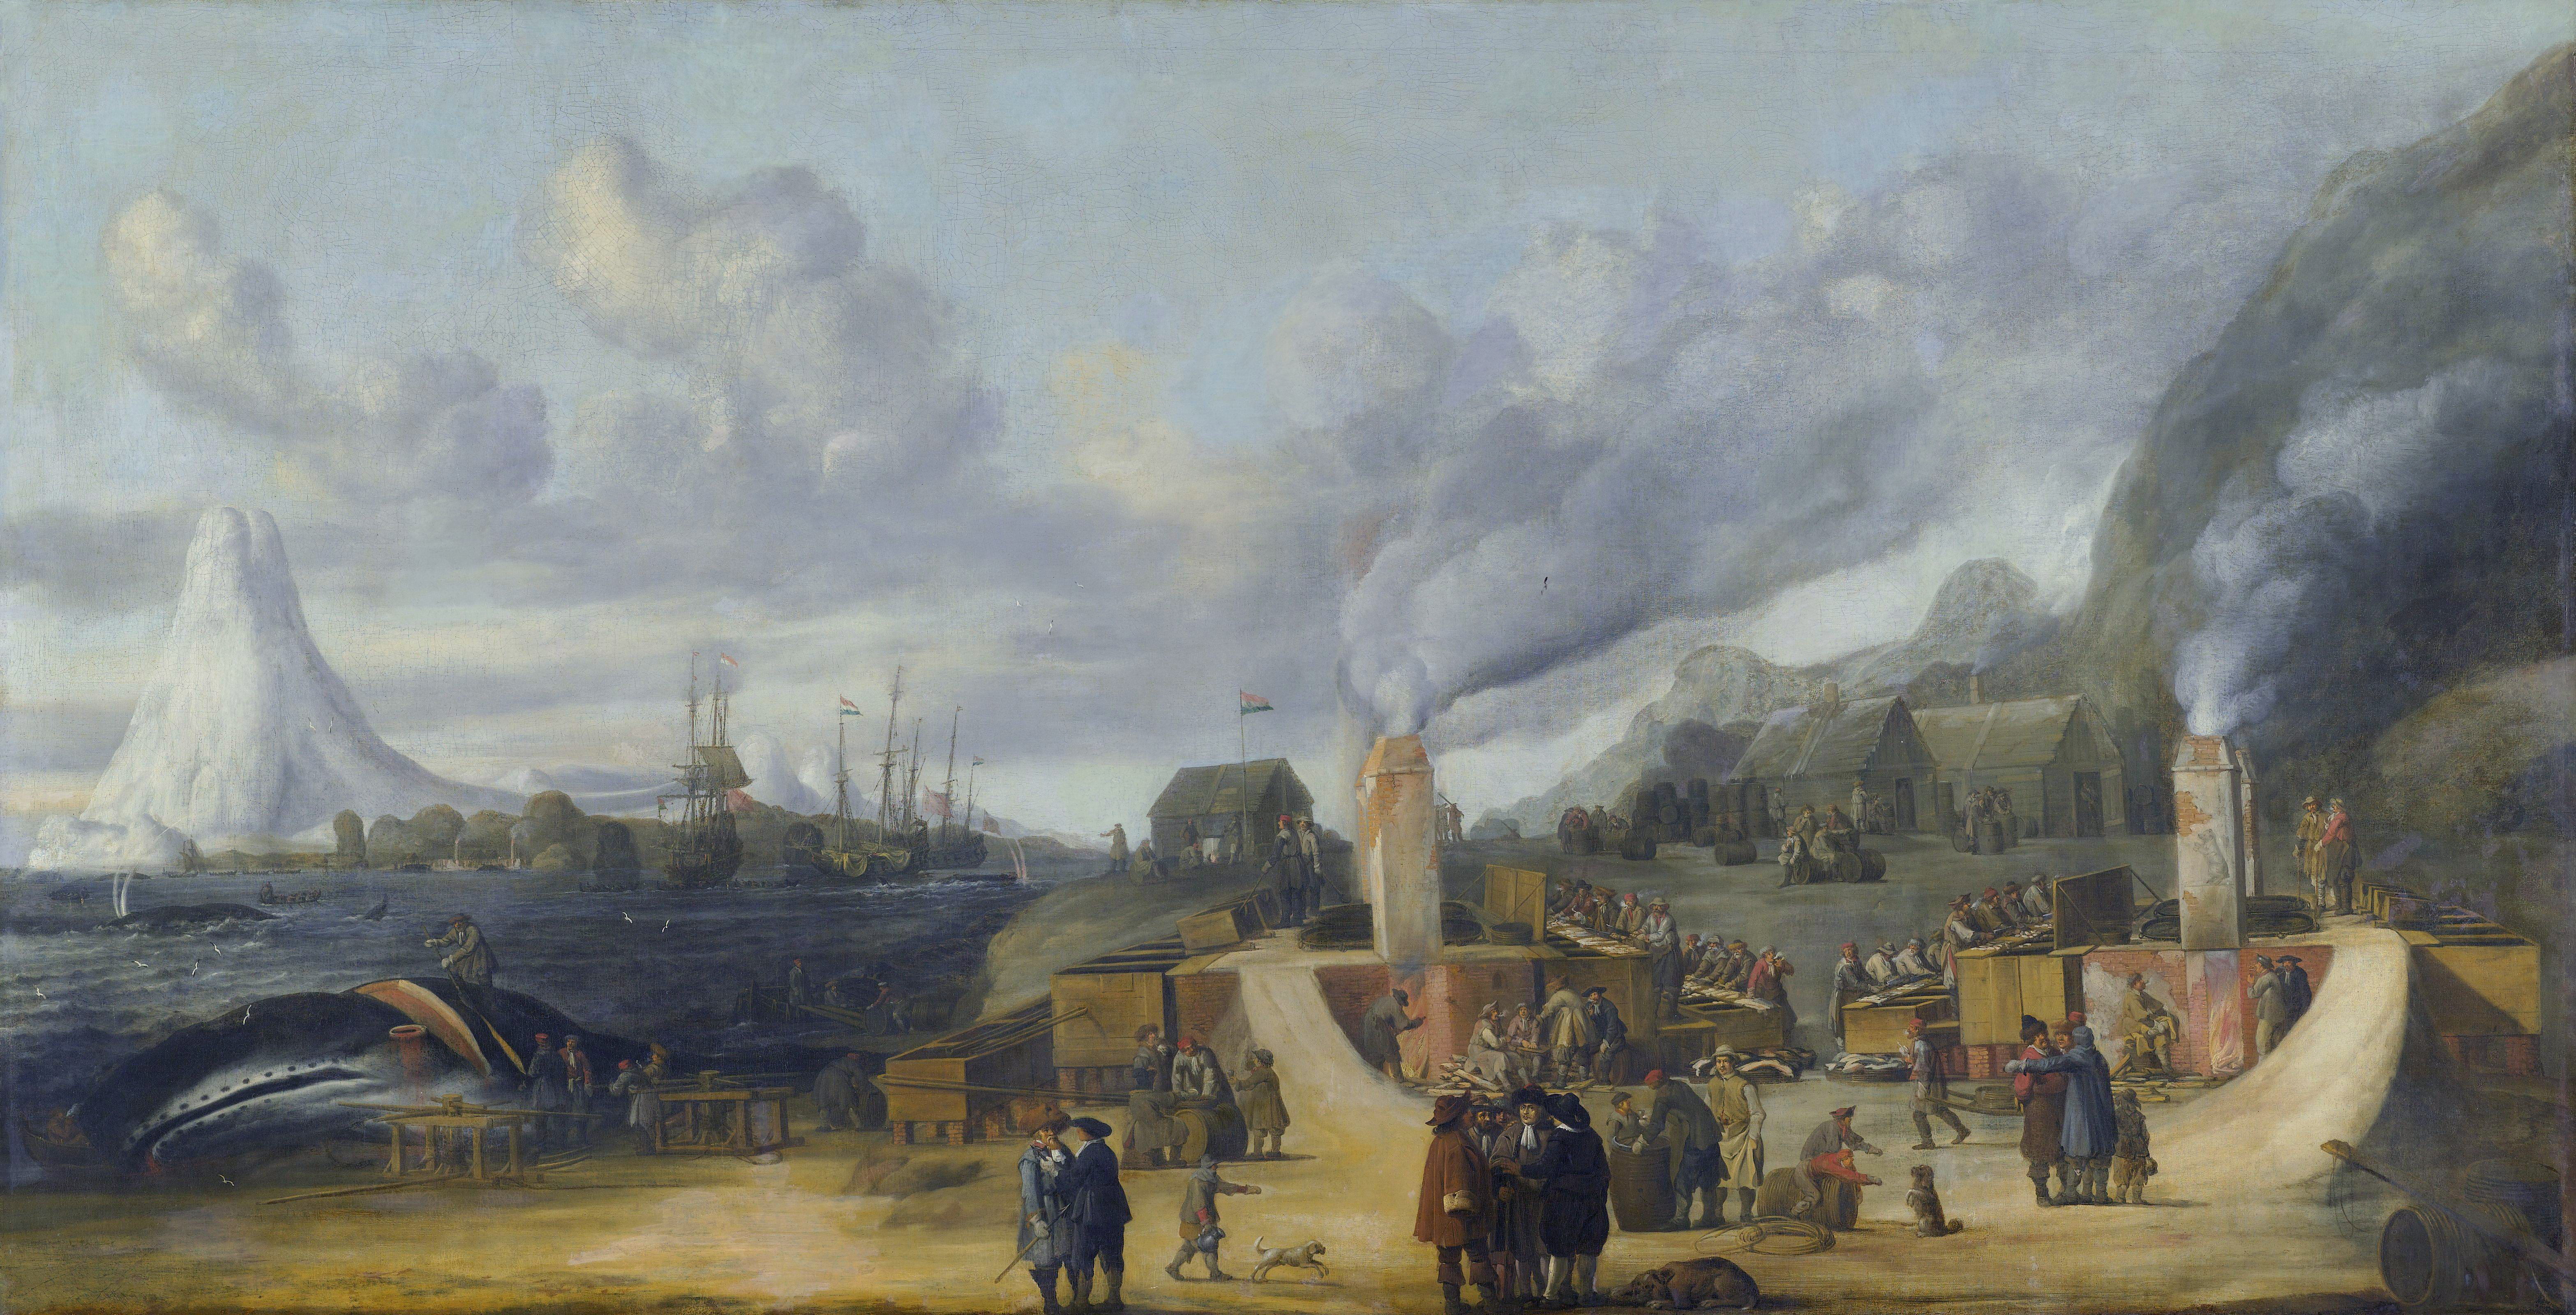 The whale train oil cookery of the Amsterdam chamber of the Northern Company at Smeerenburg; painting by Cornelis de Man (1639)